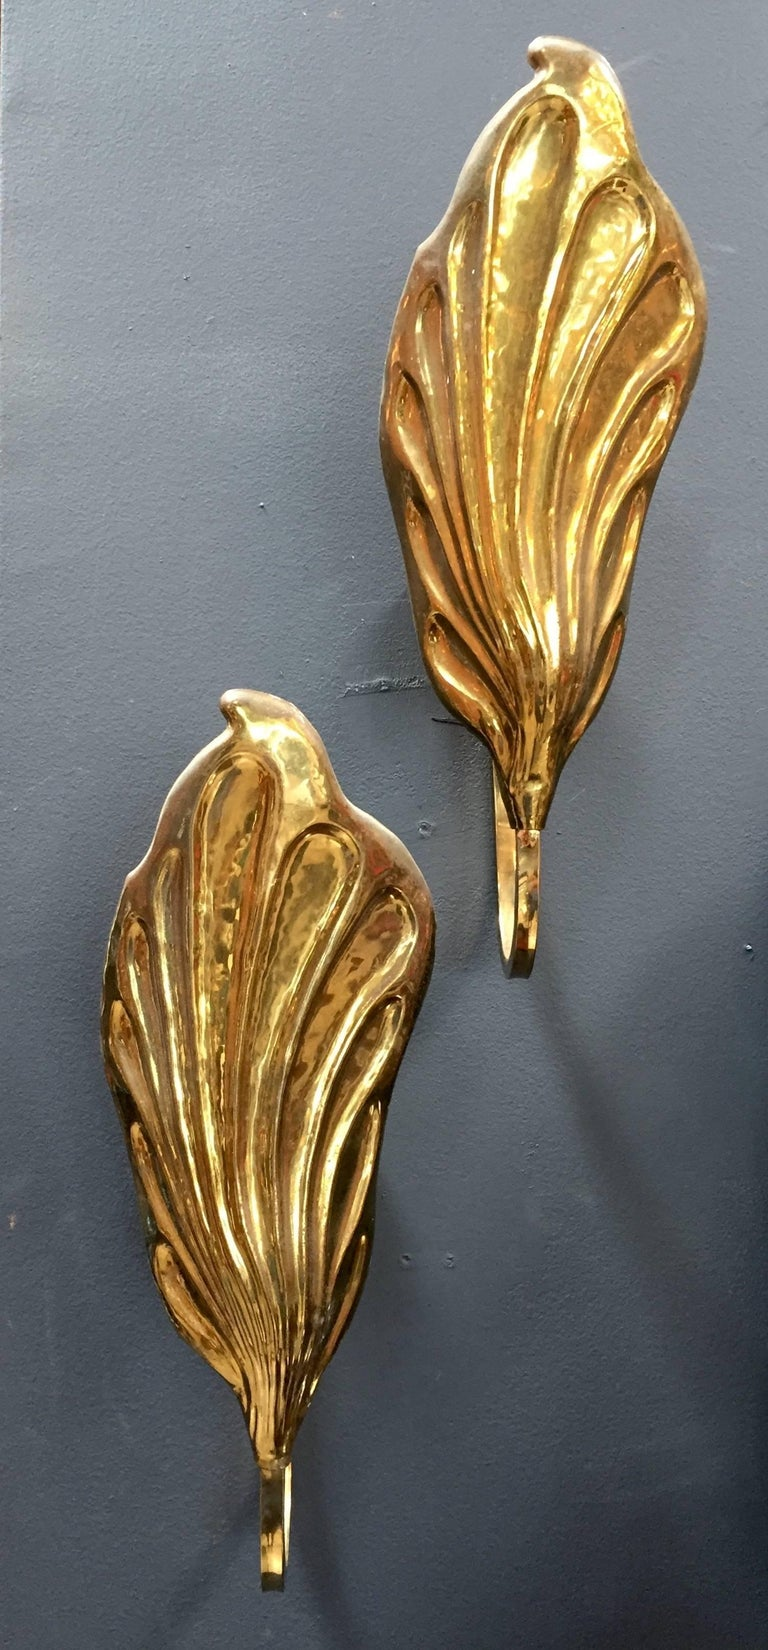 A pair of Tommaso Barbi wall lights in brass in the shape of leave. Italy, 1970s. Italian designer Tommaso Barbi is best known for whimsical furniture featuring organic forms, particularly brass leaf-shaped lamps.